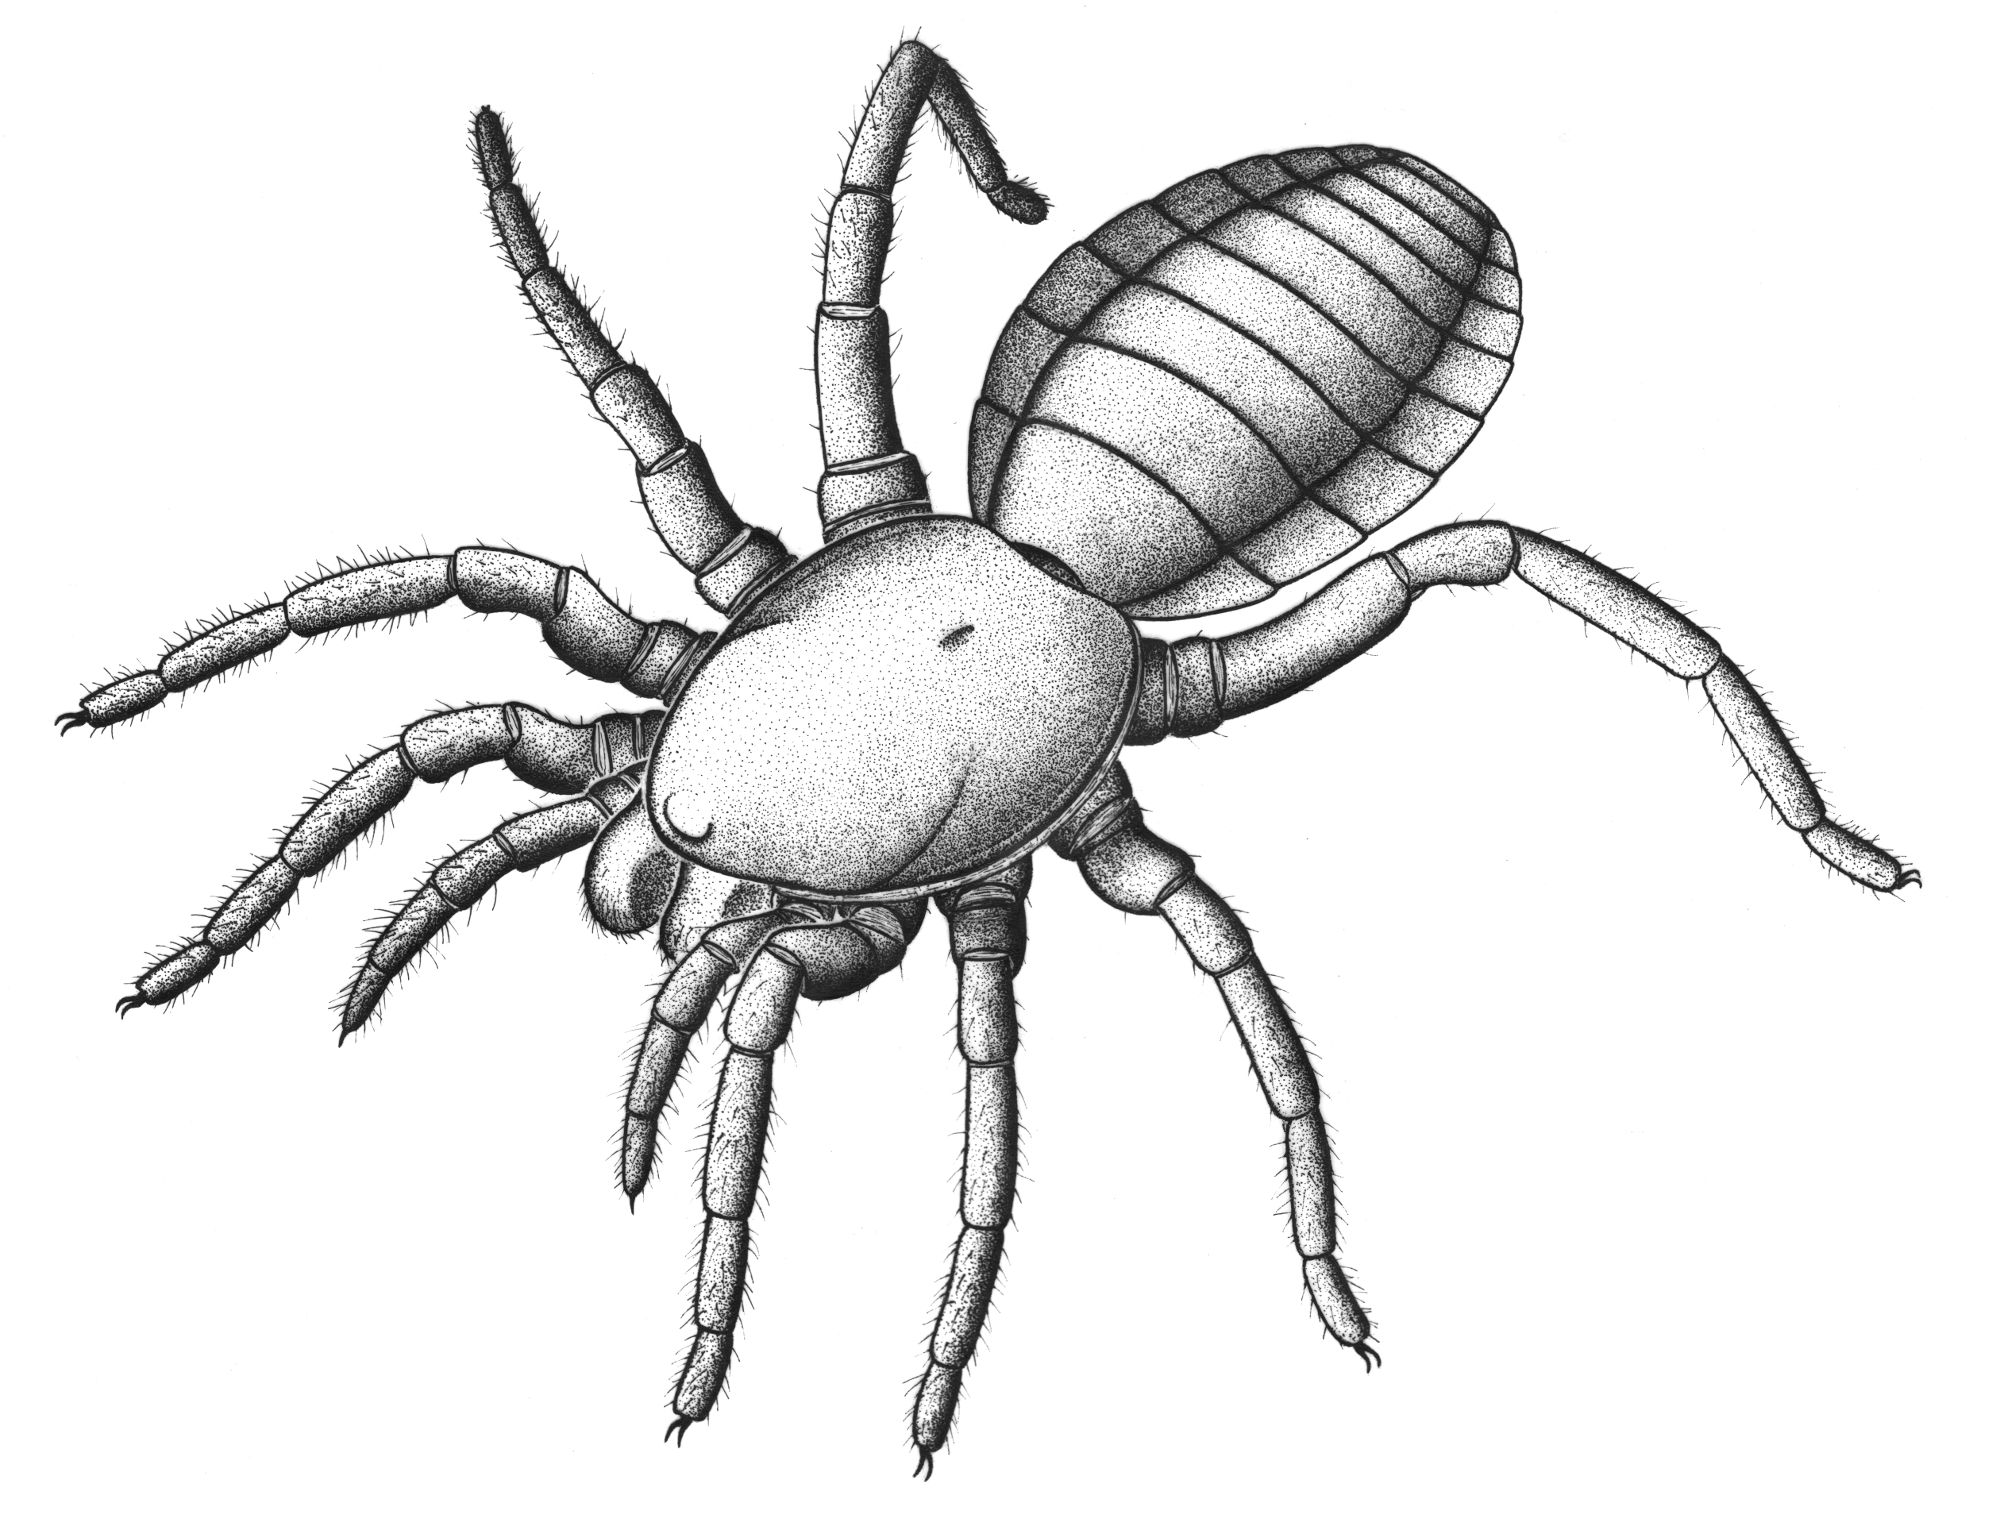 Drawn spider arachnid #6